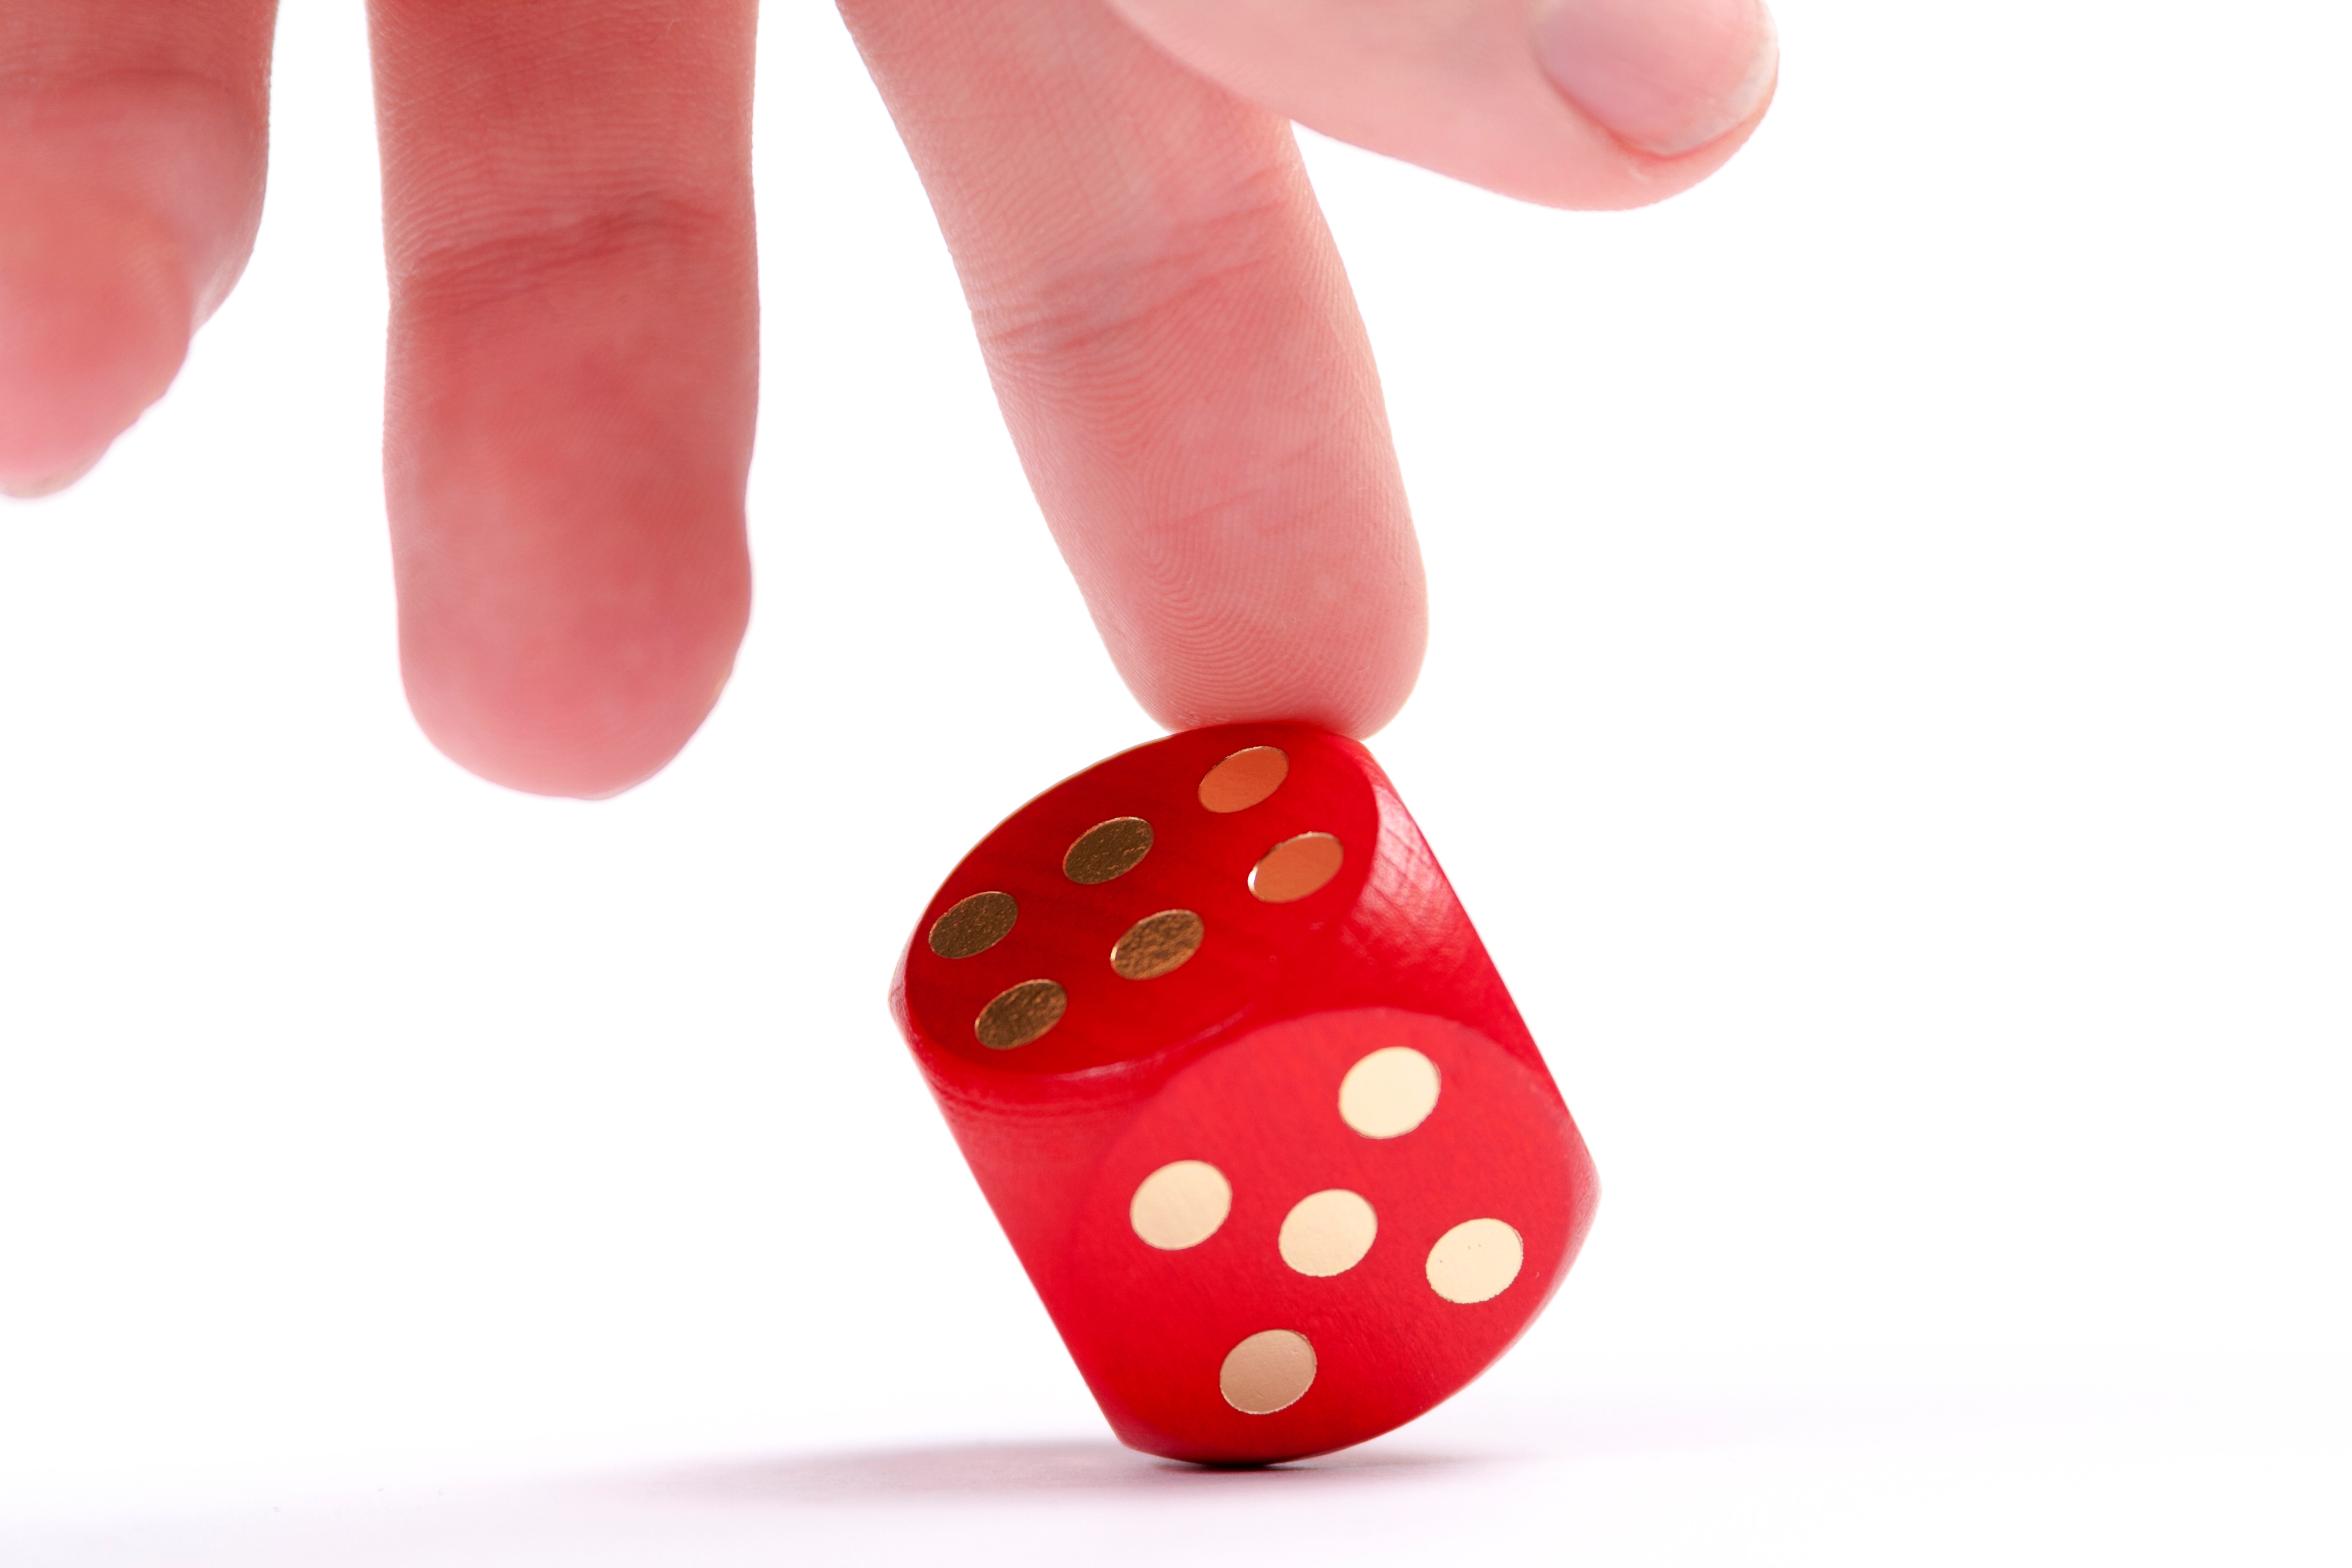 Photo illustration of six-sided die and a hand changing the roll